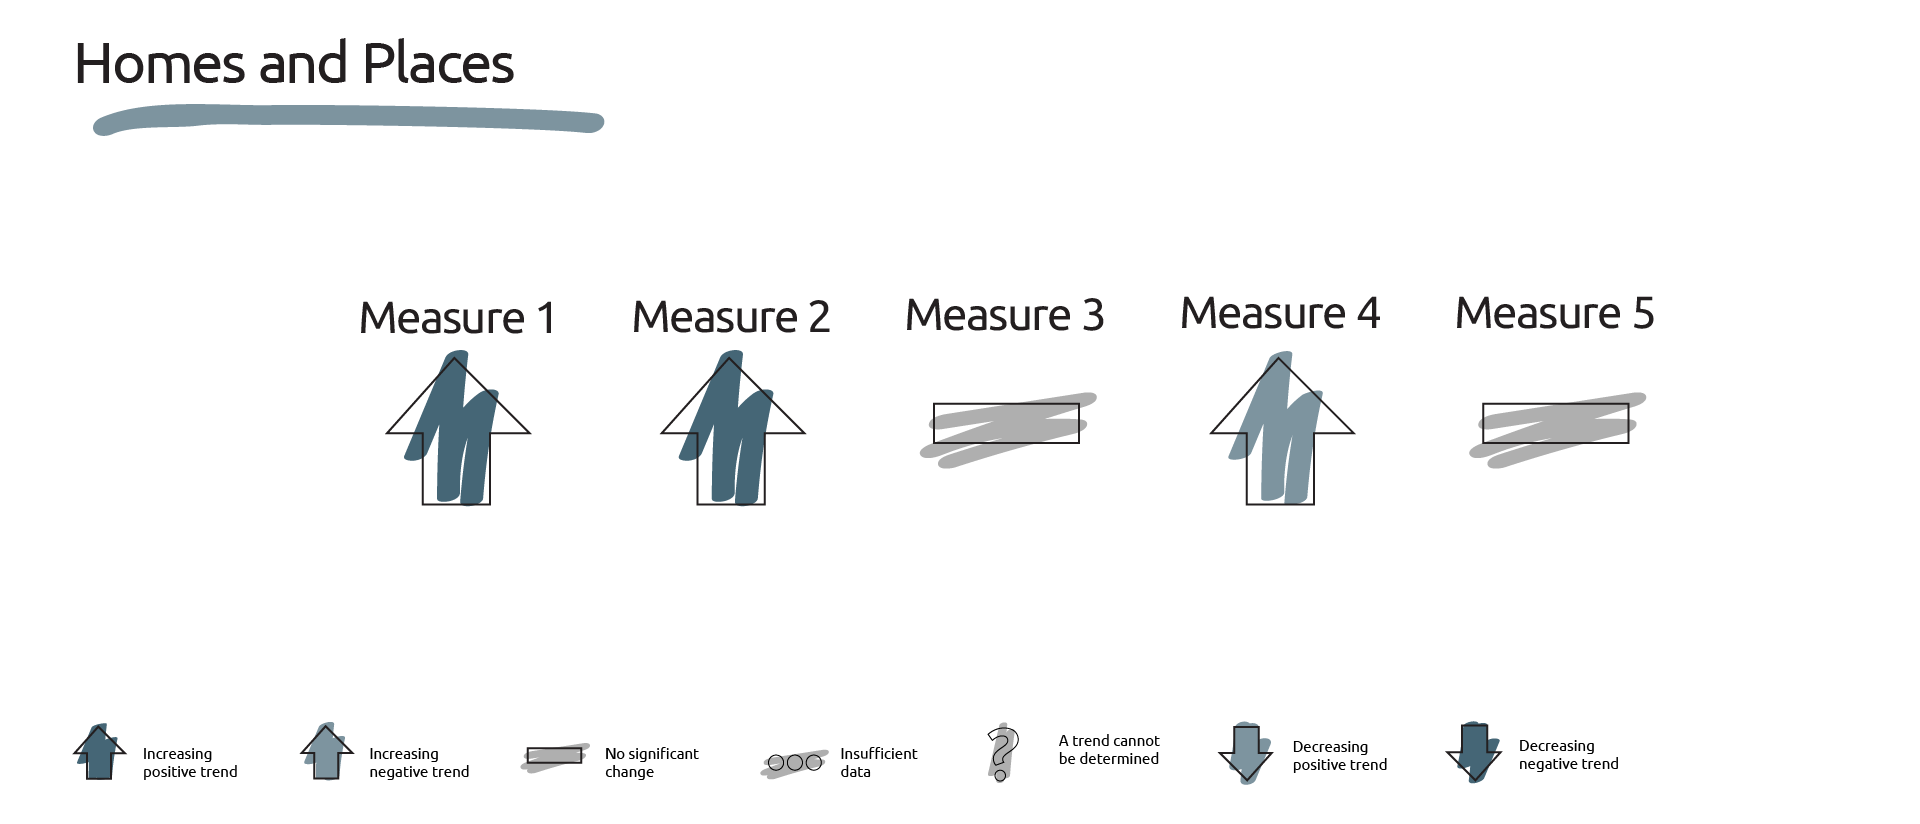 Image showing the dashboard of measures for homes and places.